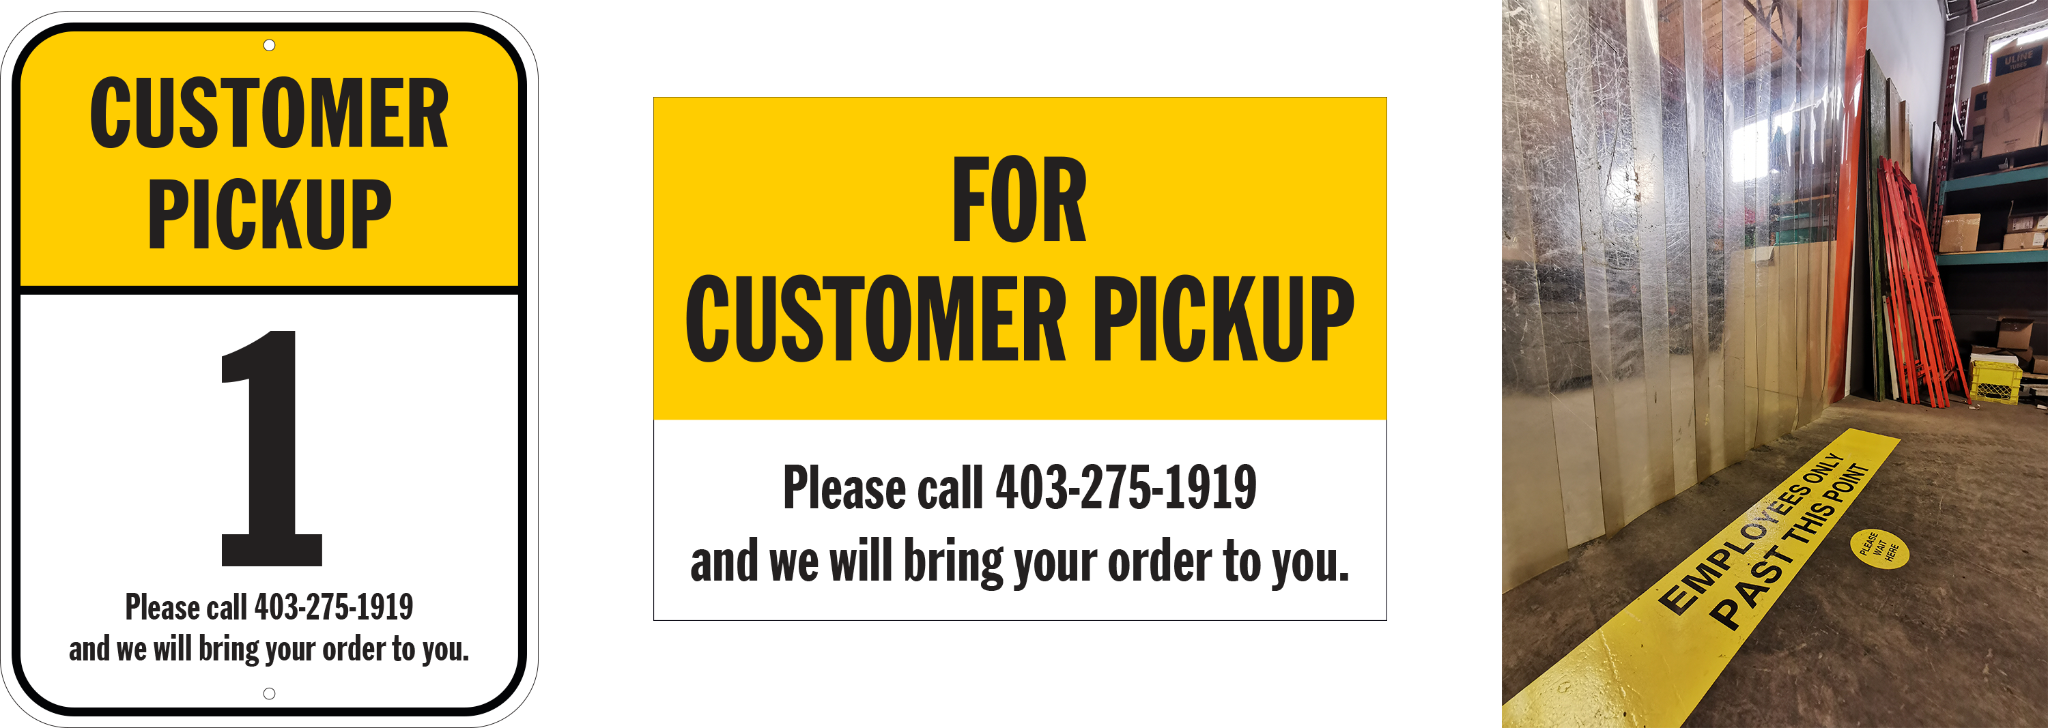 avoid unnecessary contact with couriers and customers